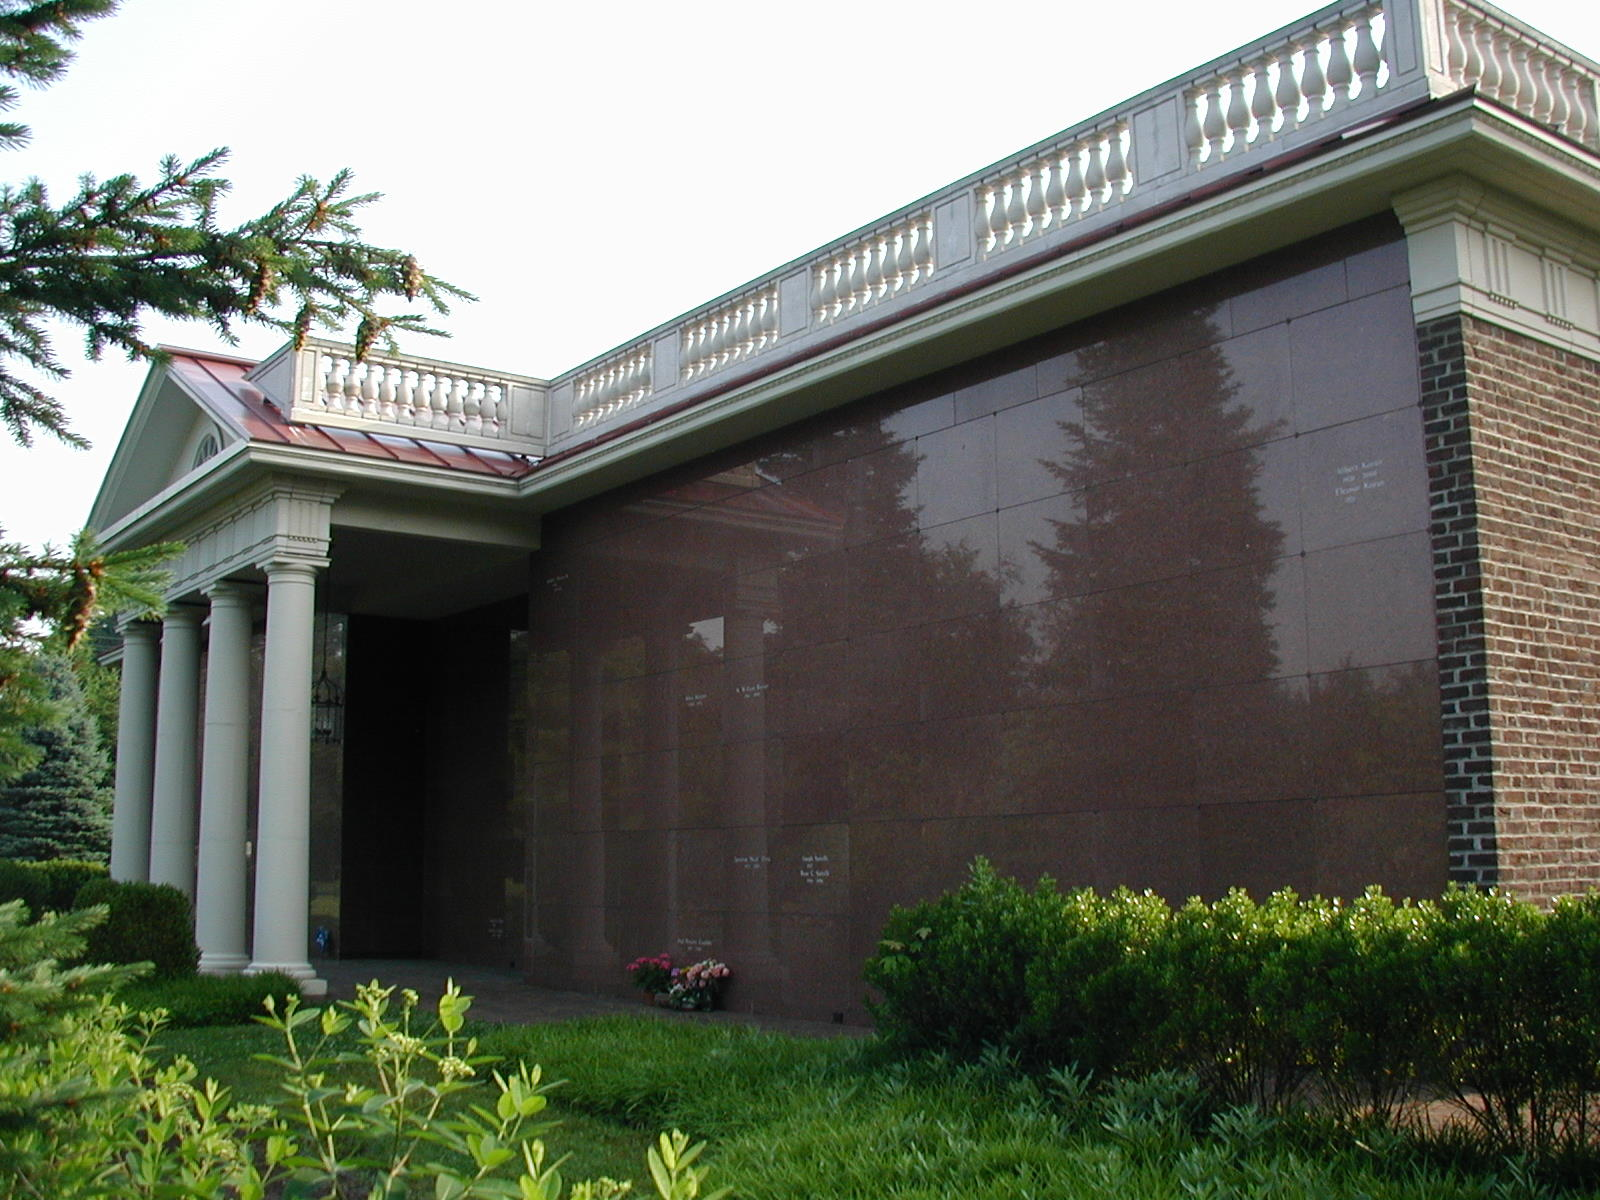 image of exterior crypts at Arlington Cemetery, a brick building with tall, white columns in front.